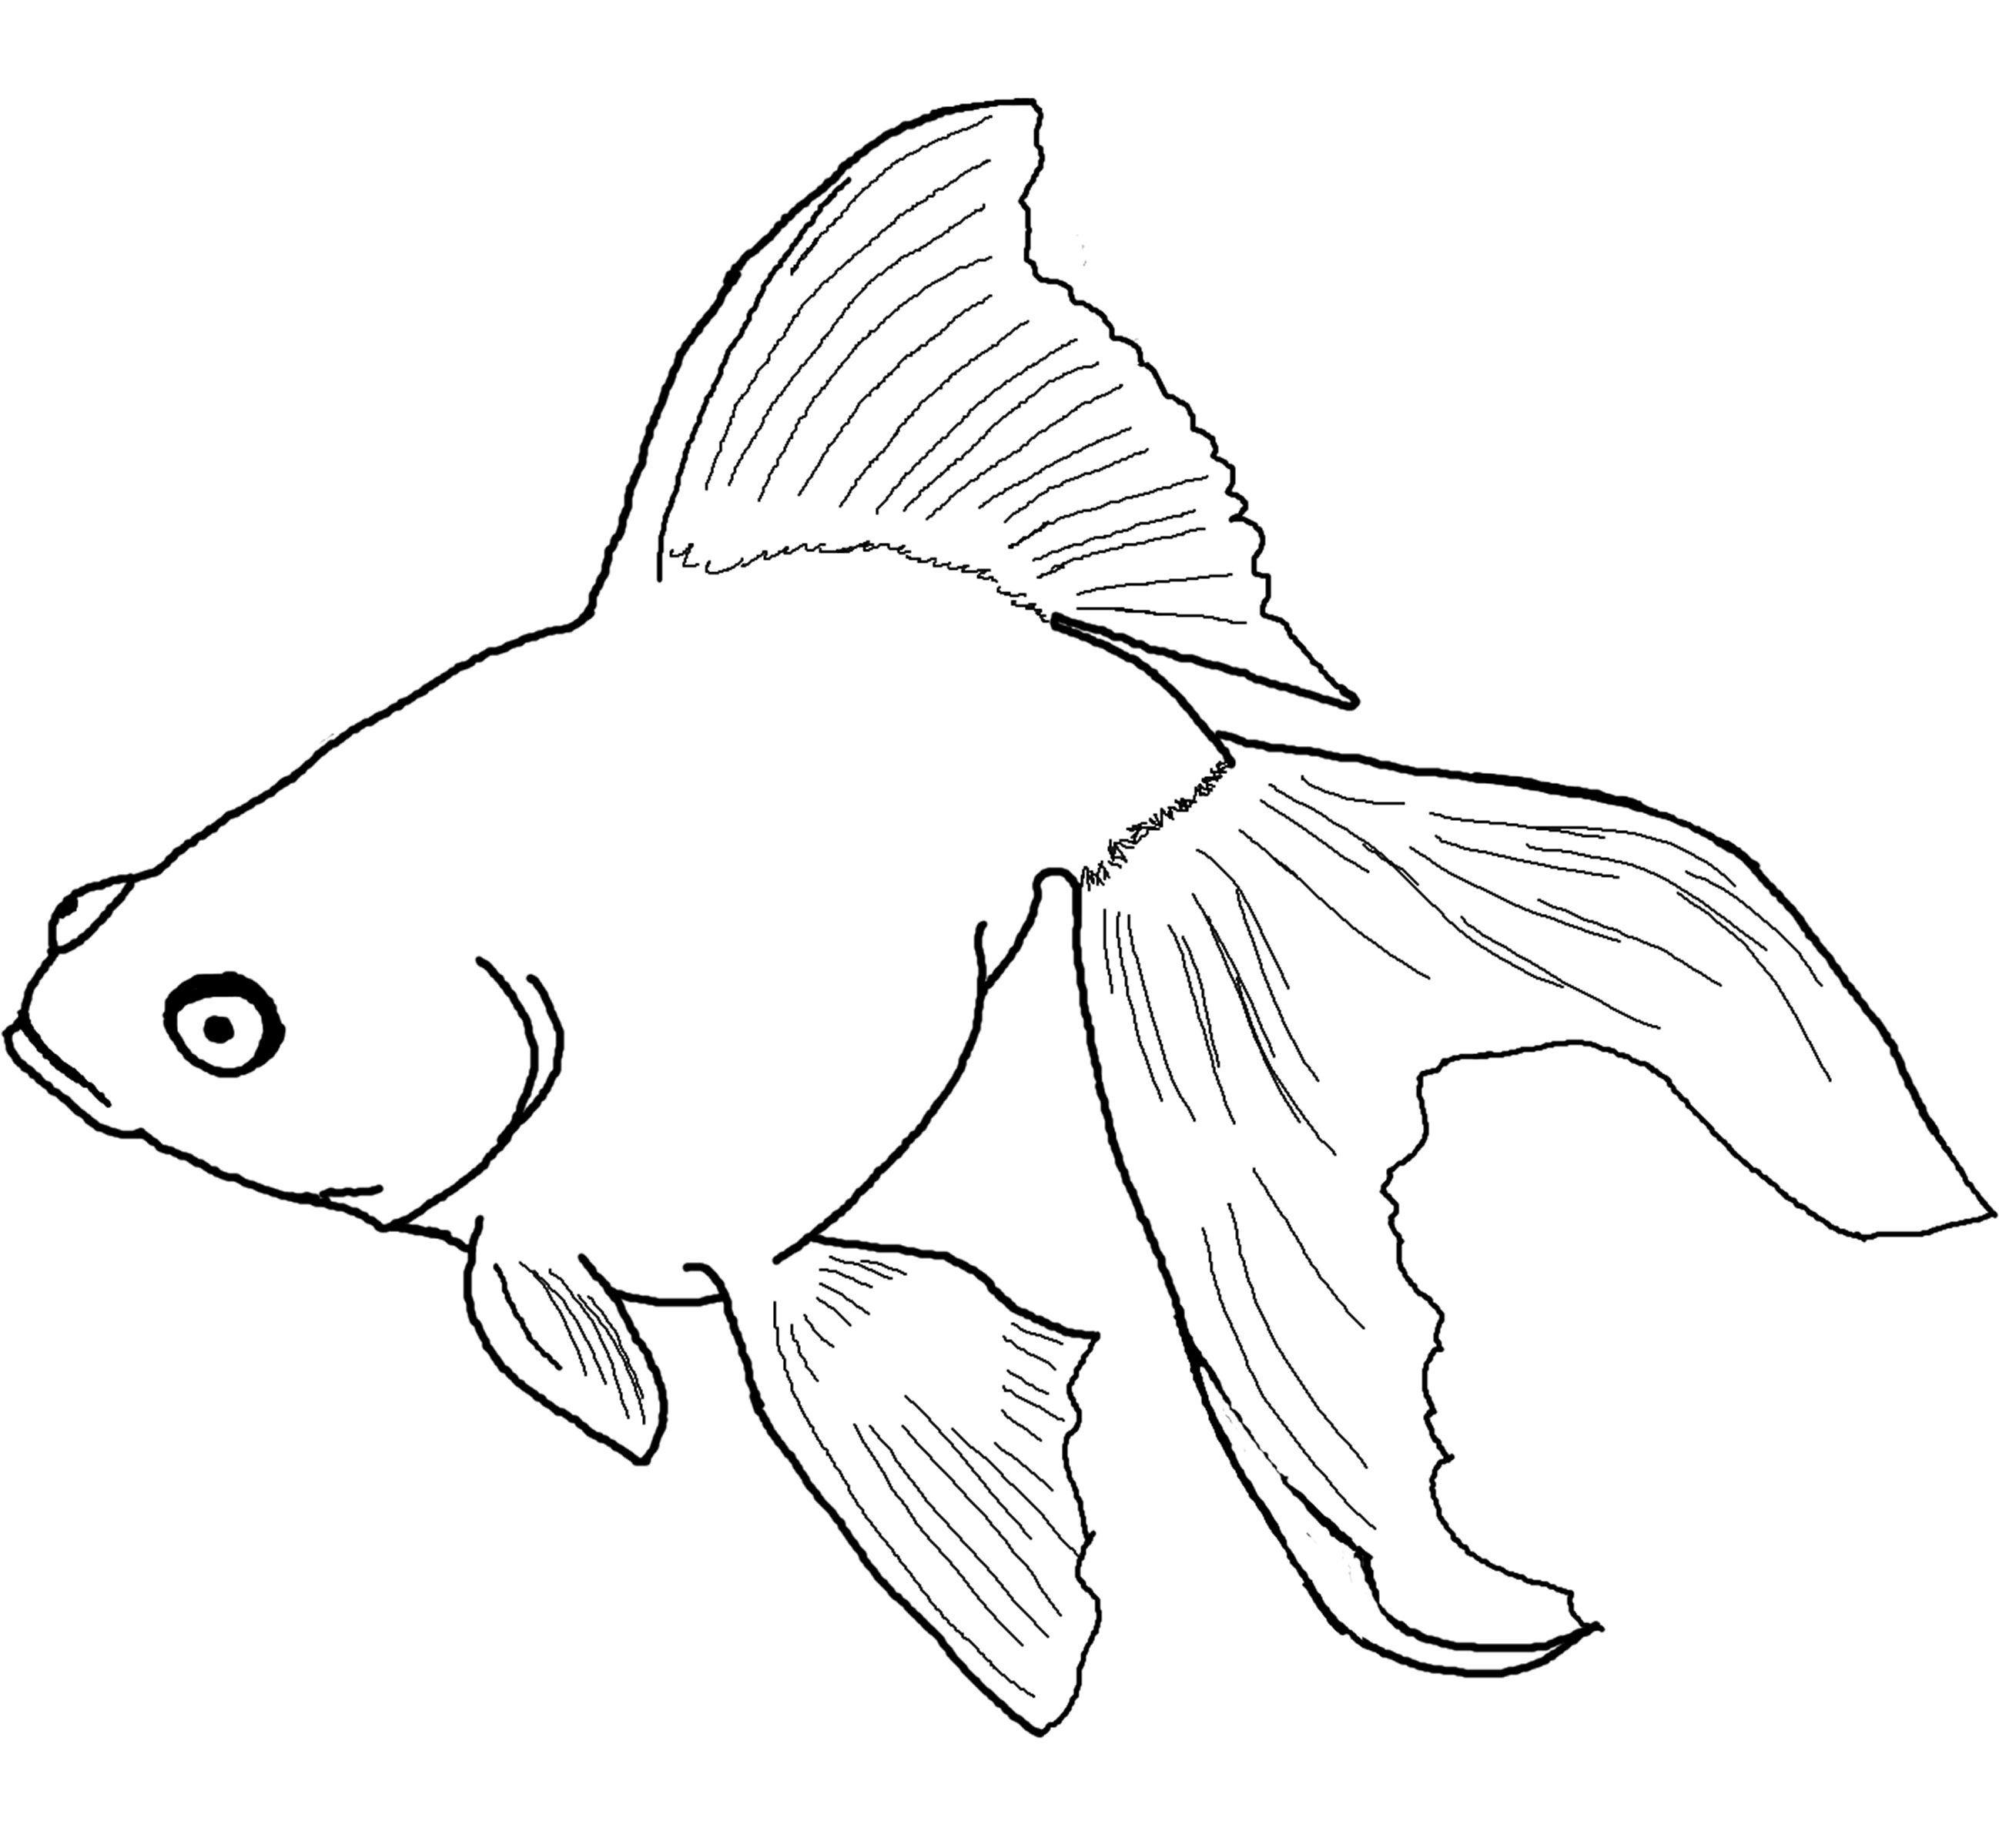 Free Printable Fish Coloring Pages For Kids - Free Printable Fish Coloring Pages